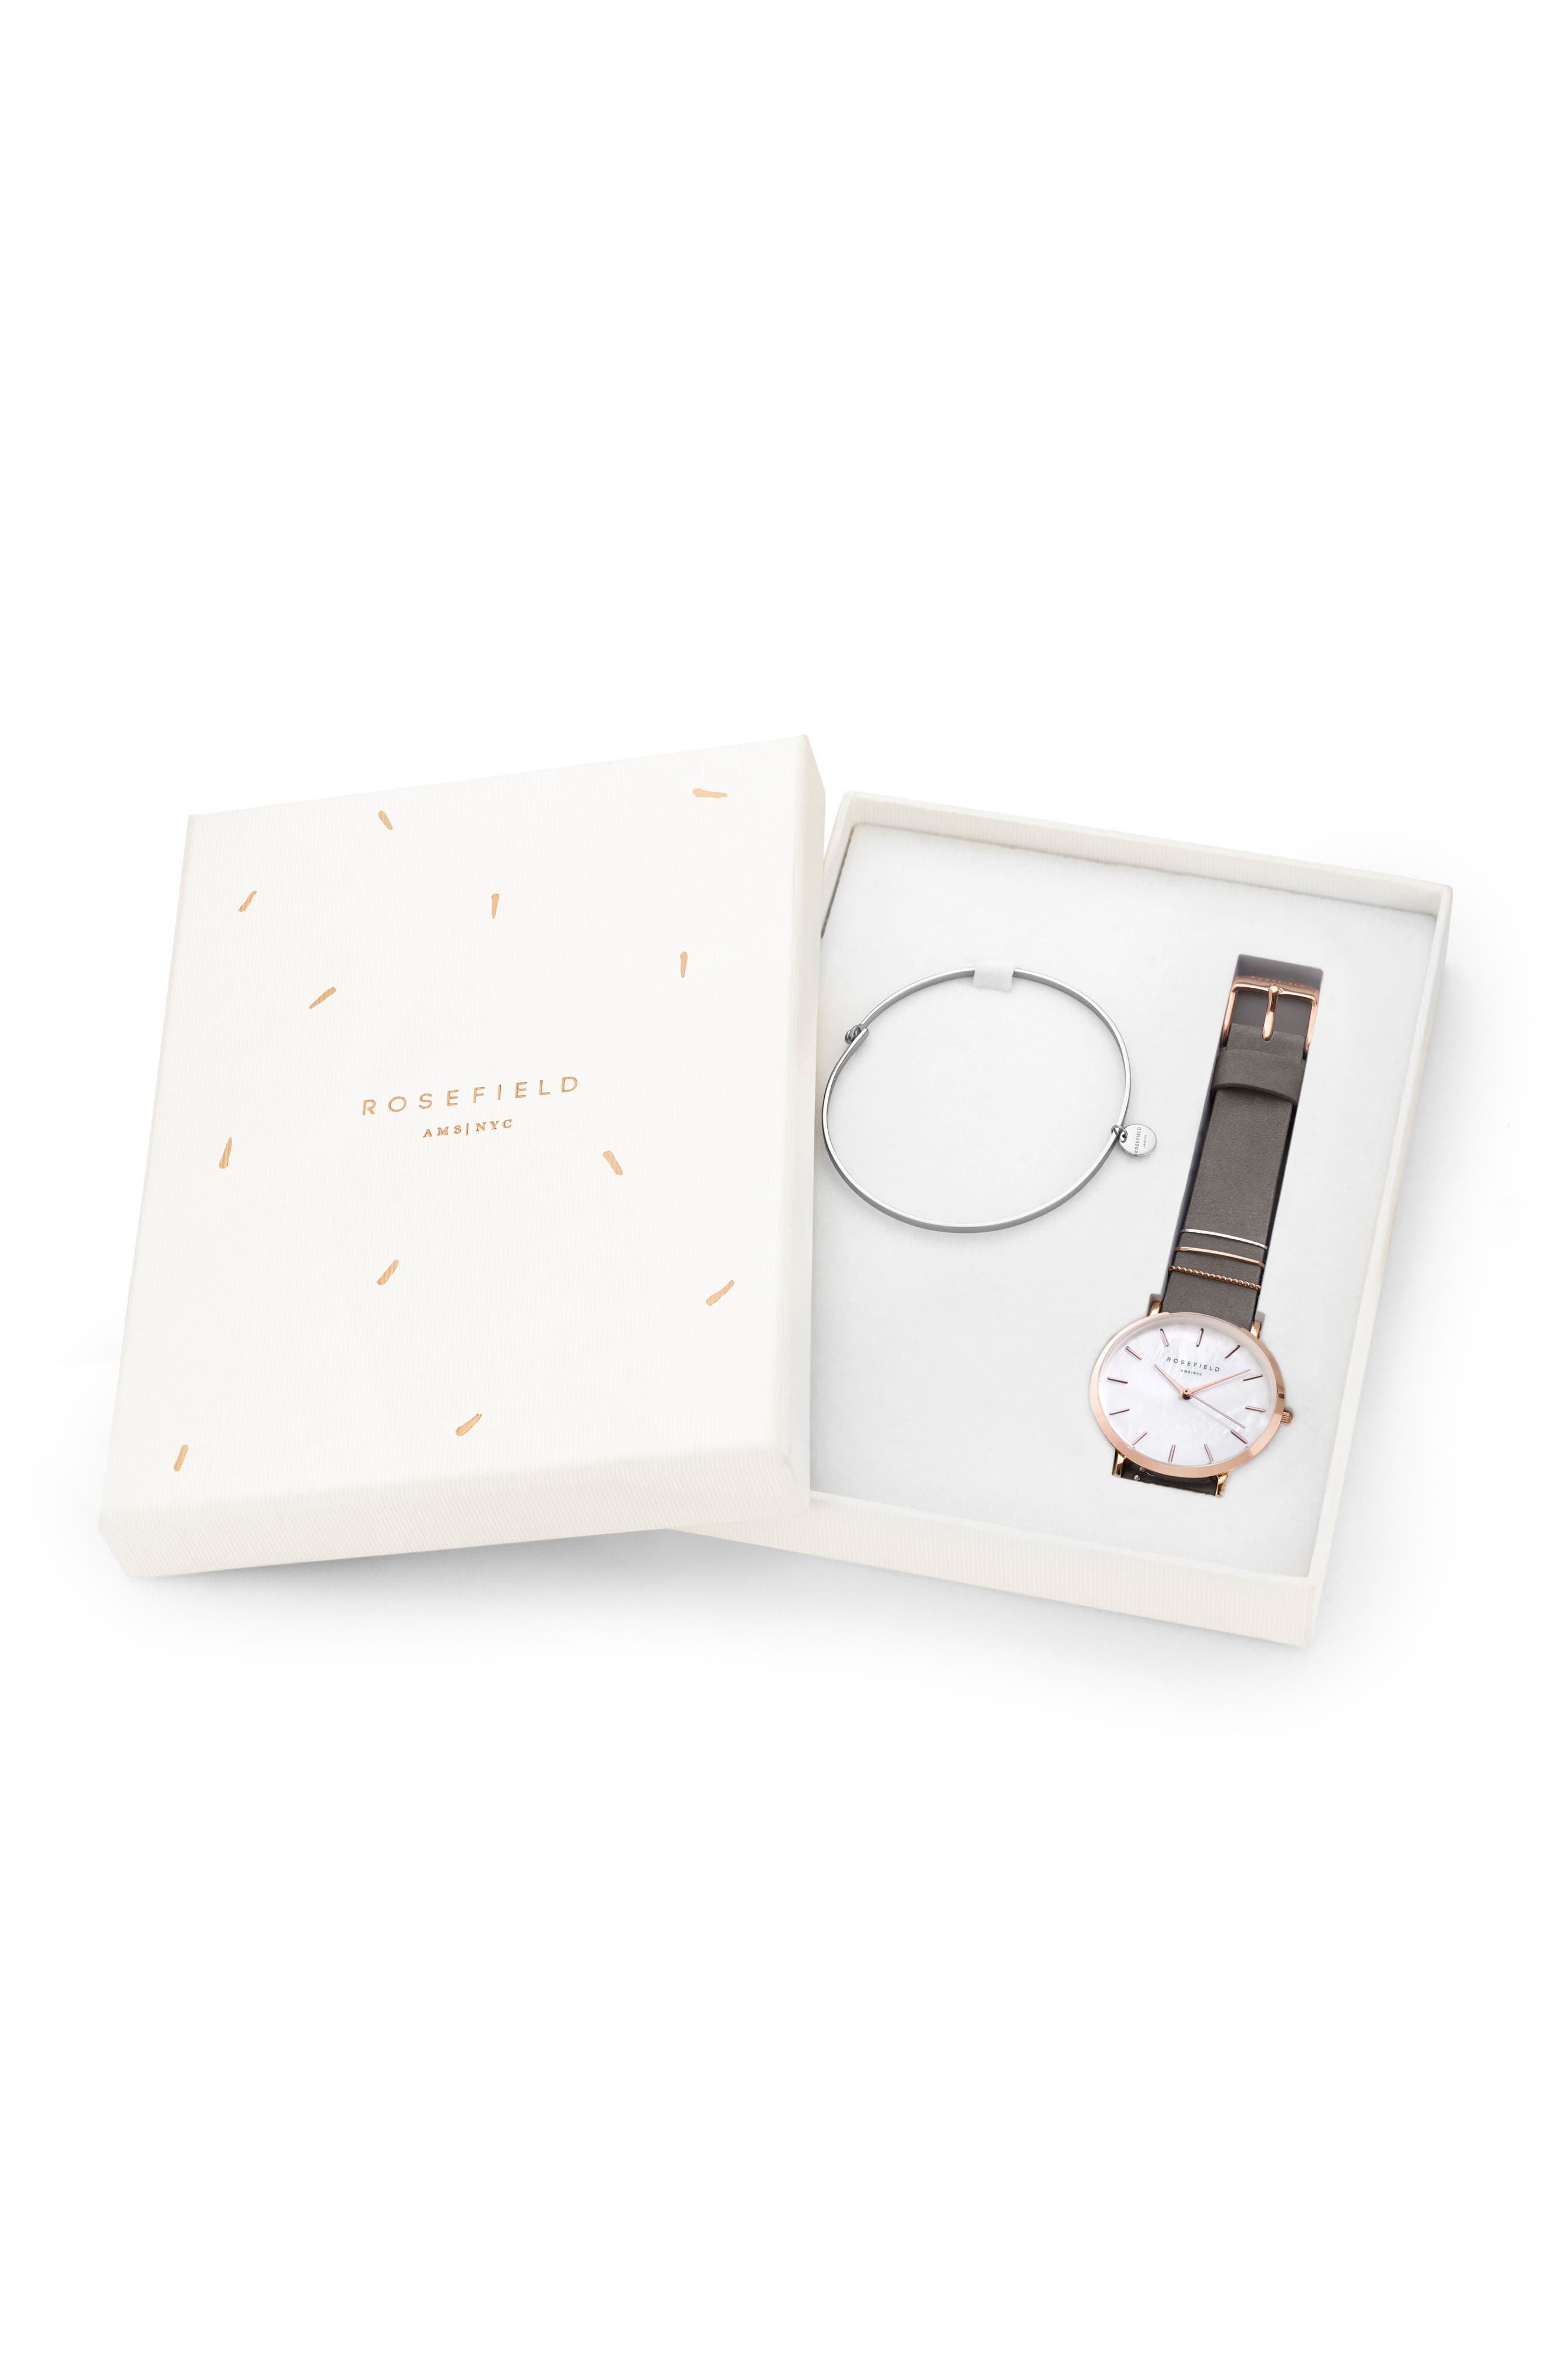 Holiday Leather Strap Watch & Bracelet Gift Set, 33mm,                             Alternate thumbnail 4, color,                             GREY/ ROSE GOLD/ SILVER